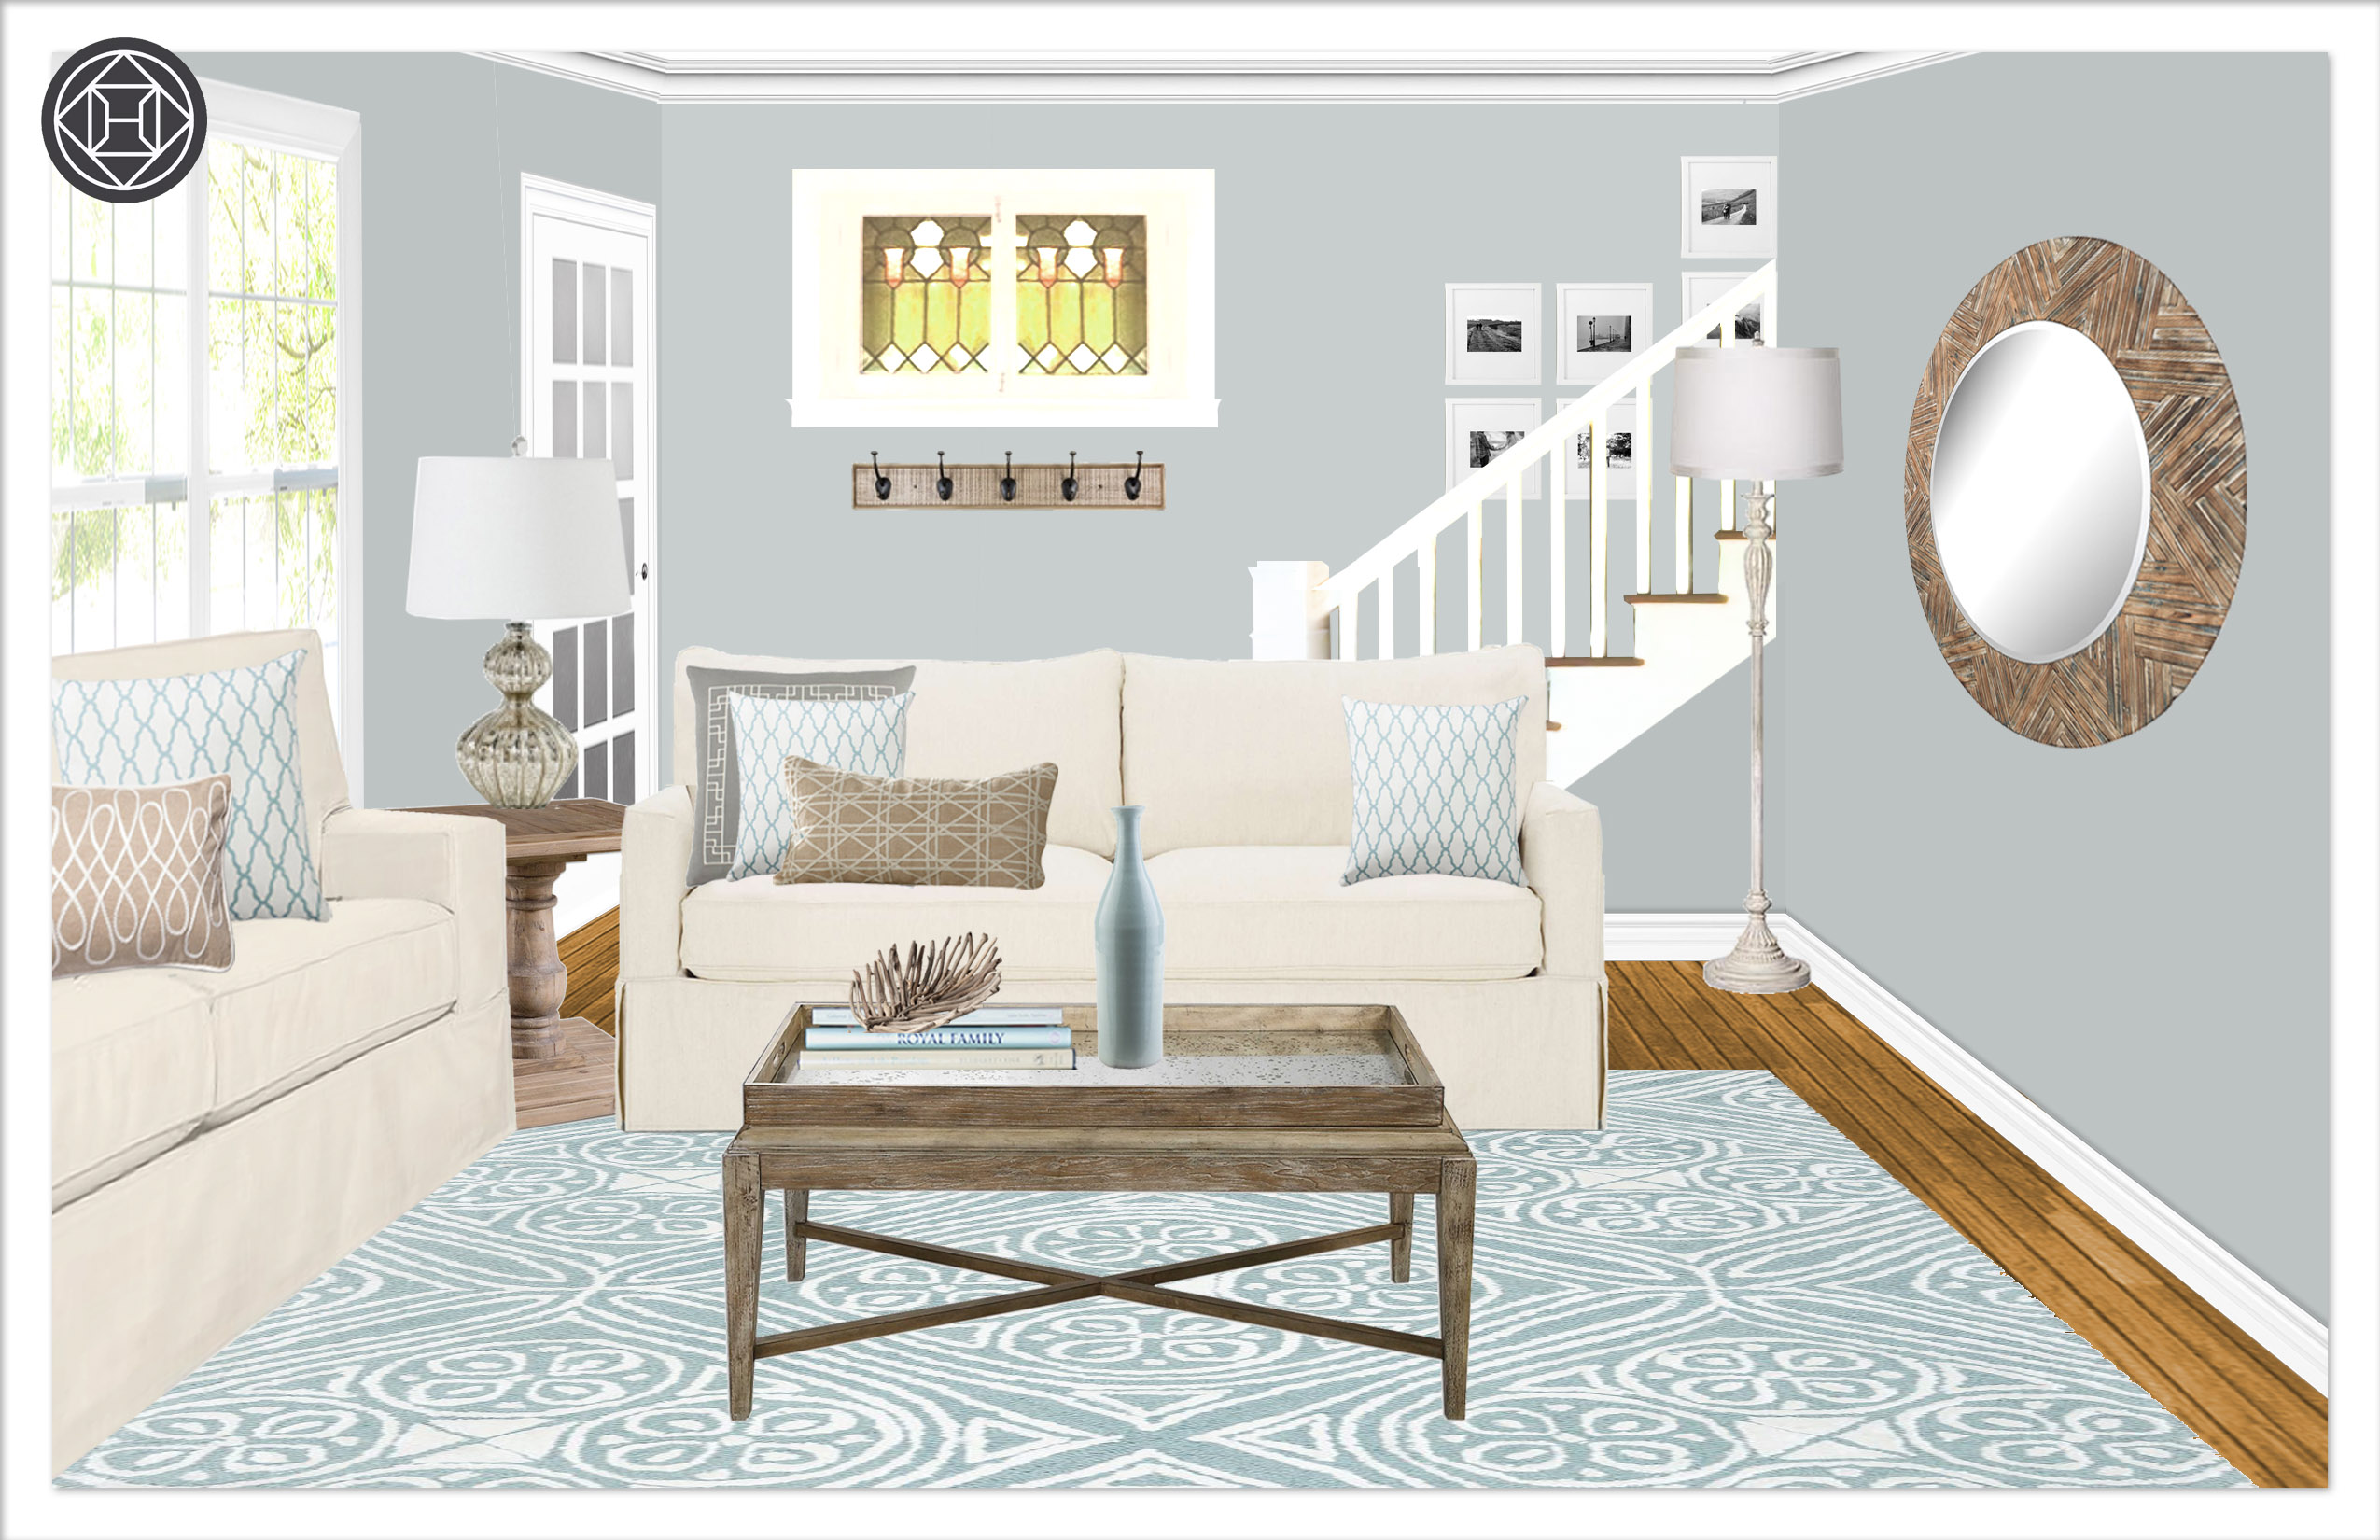 Living room 10, Layout 2.3 Kylie T interiors